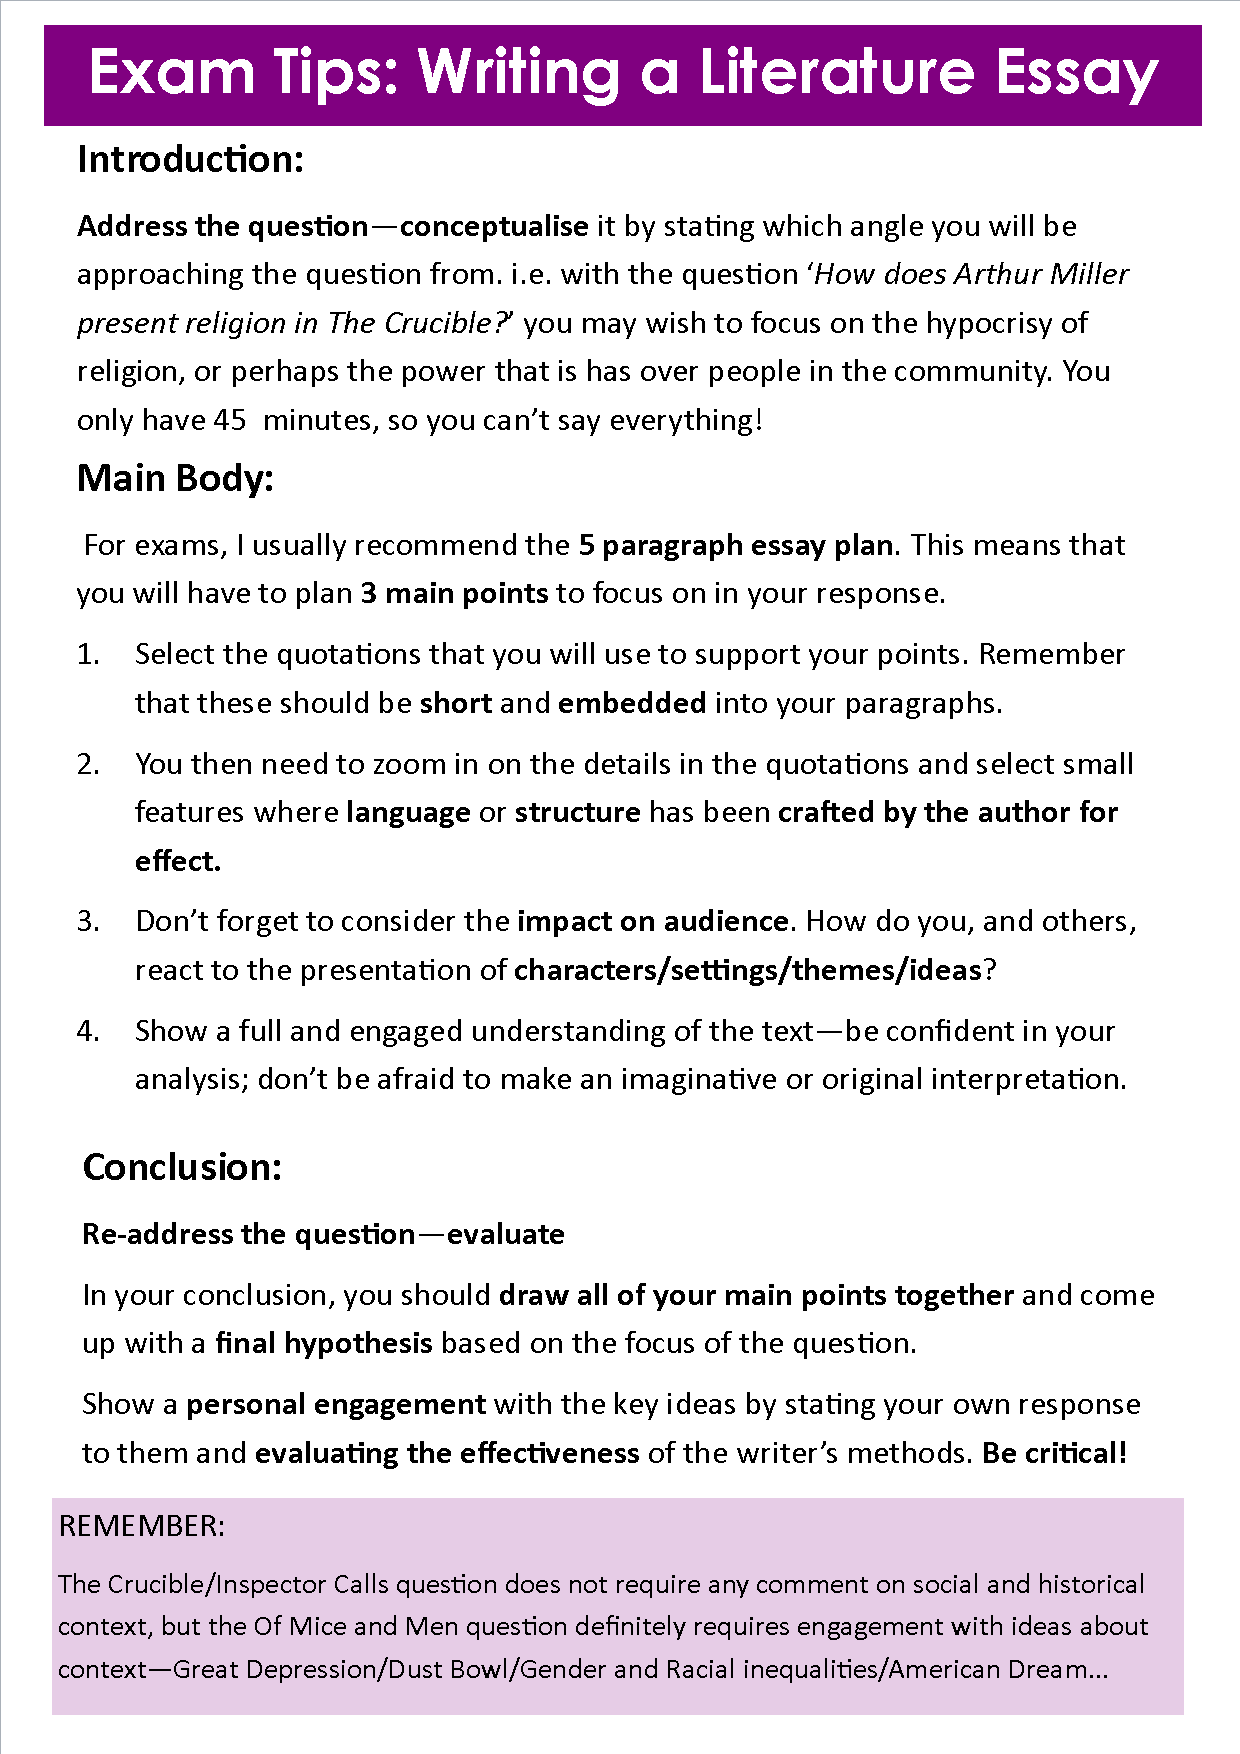 gcse english poetry essay revision Home gcse english literature writing an unseen poetry essay writing a gcse unseen poetry essay (wjec) unseen poetry revision 10 / 5.